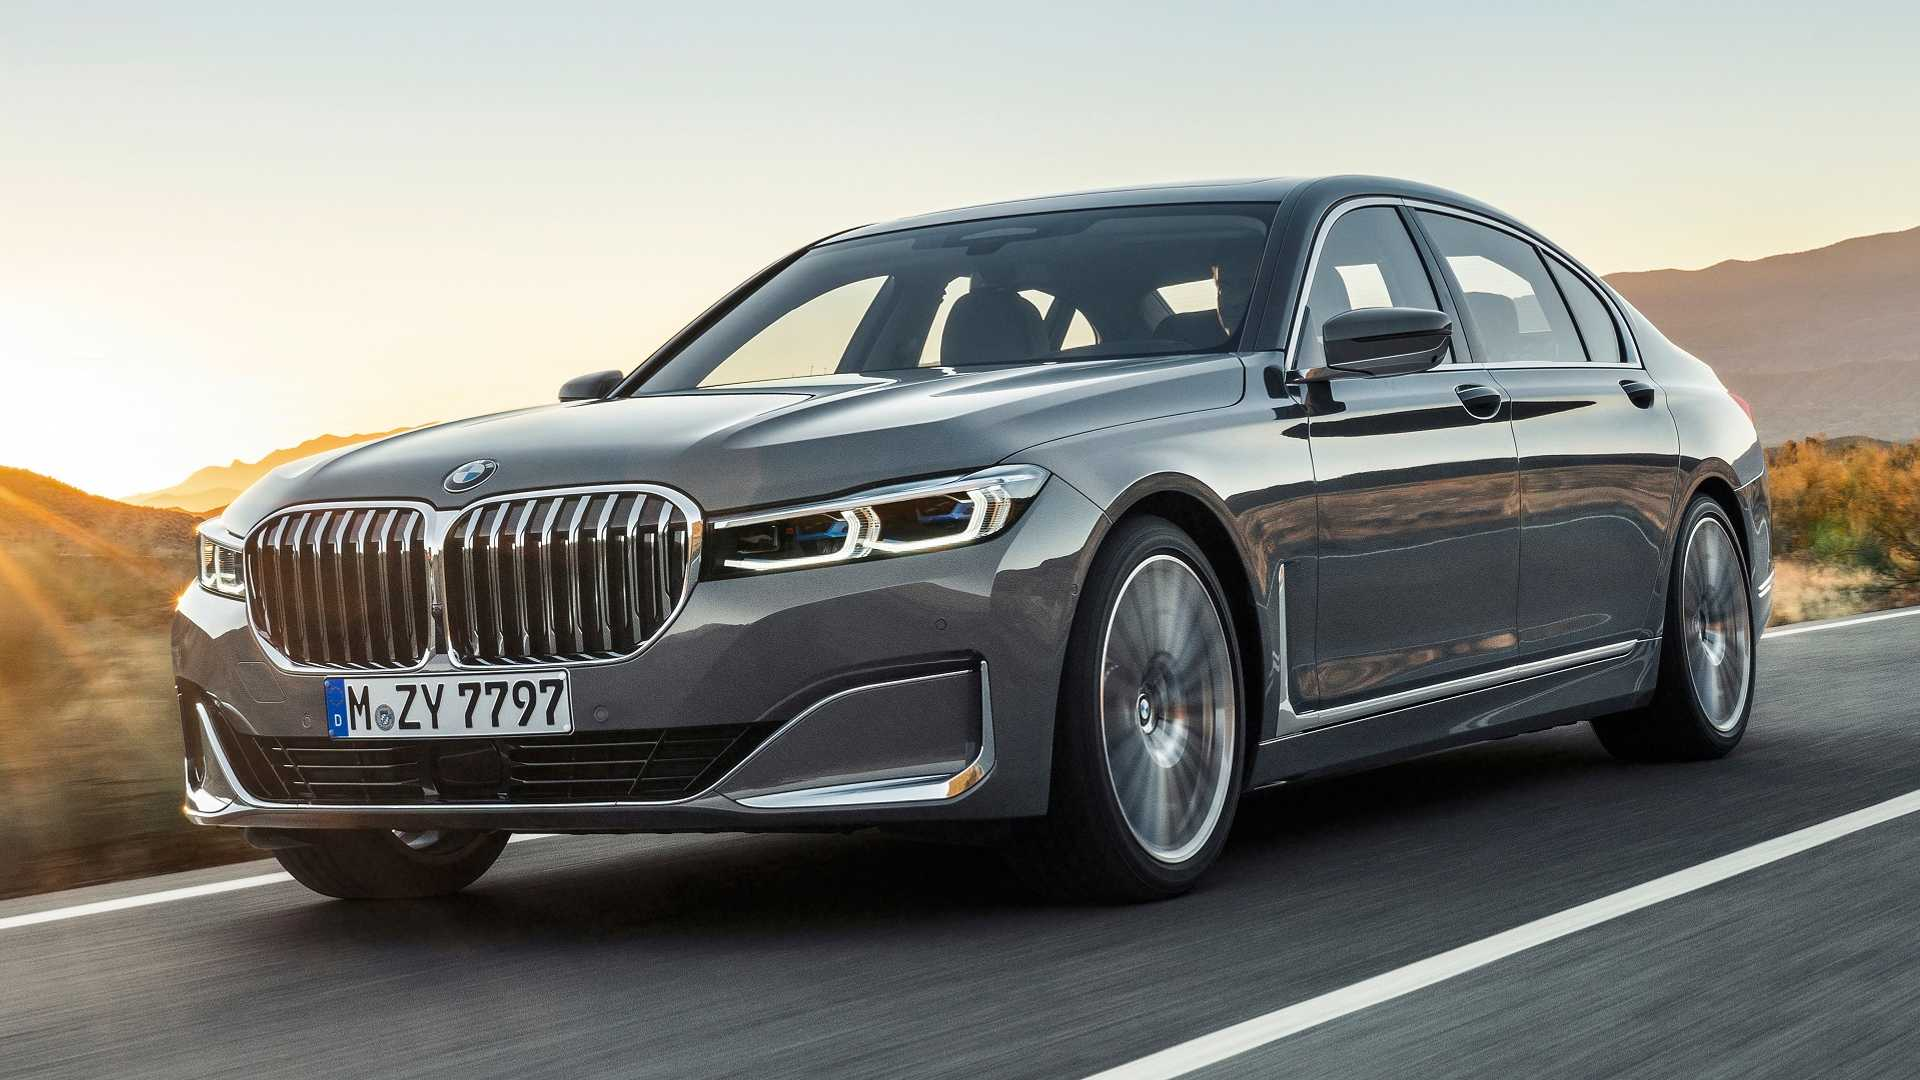 66 The Best BMW V8 2020 Exterior And Interior